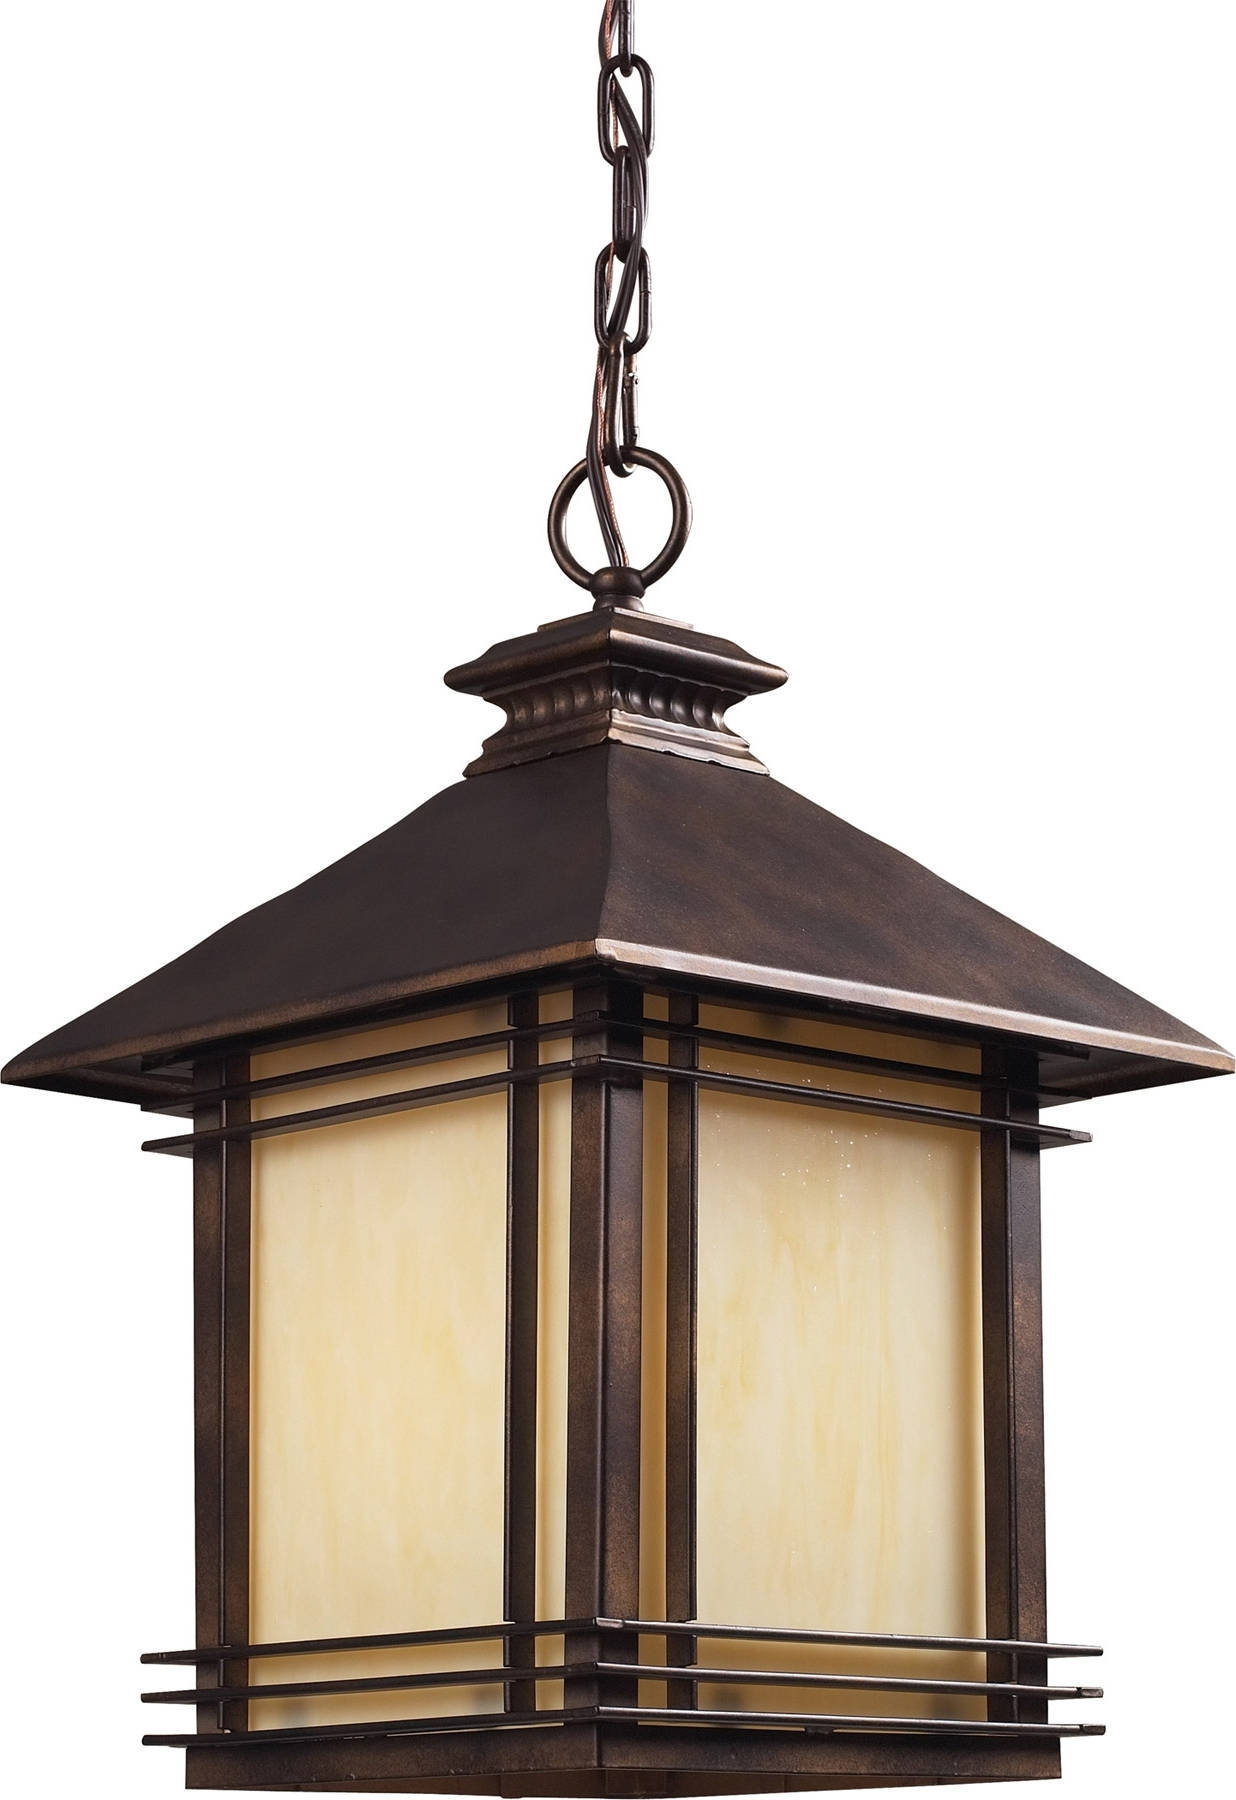 Lighting 42103/1 Blackwell Outdoor Hanging Lantern Intended For Widely Used Outdoor Hanging Porch Lights (View 17 of 20)